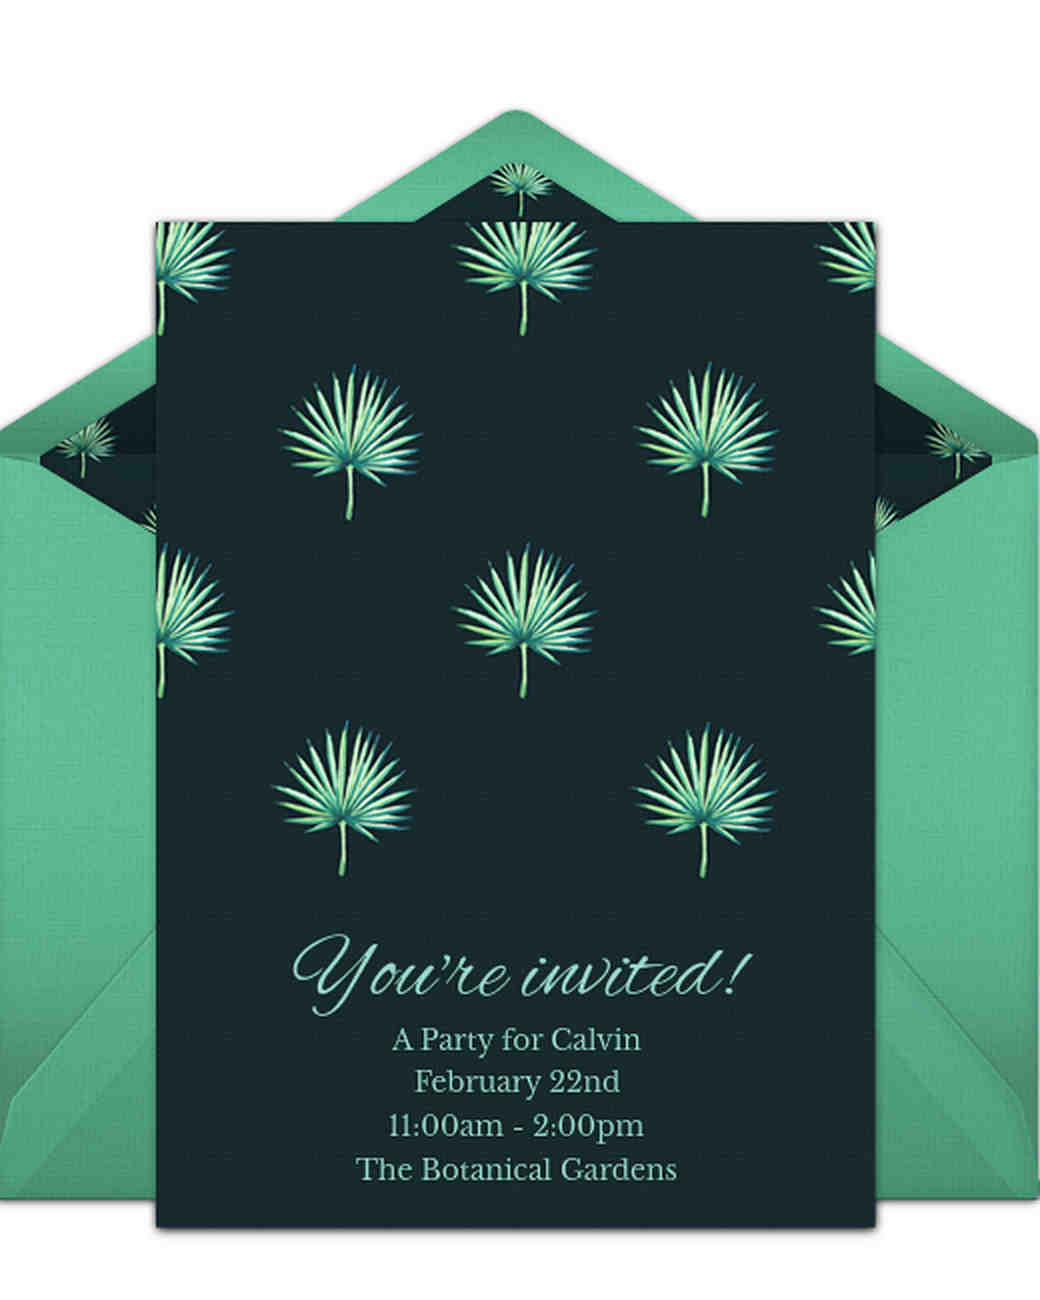 paperless-engagement-party-invitations-punchbowl-succulents-0416.jpg